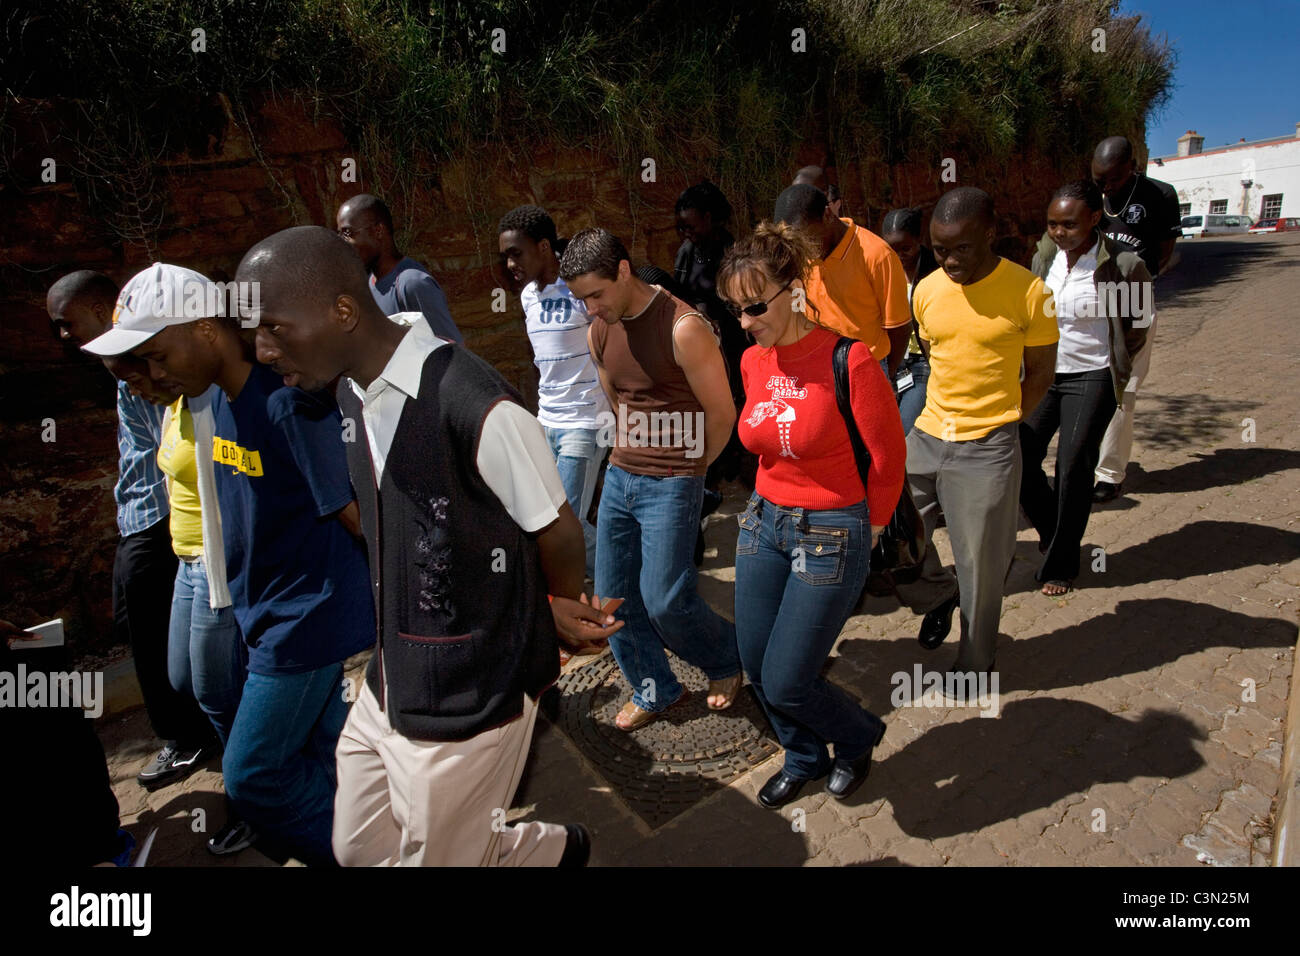 South Africa. Johannesburg. Constitution Hill. - Stock Image